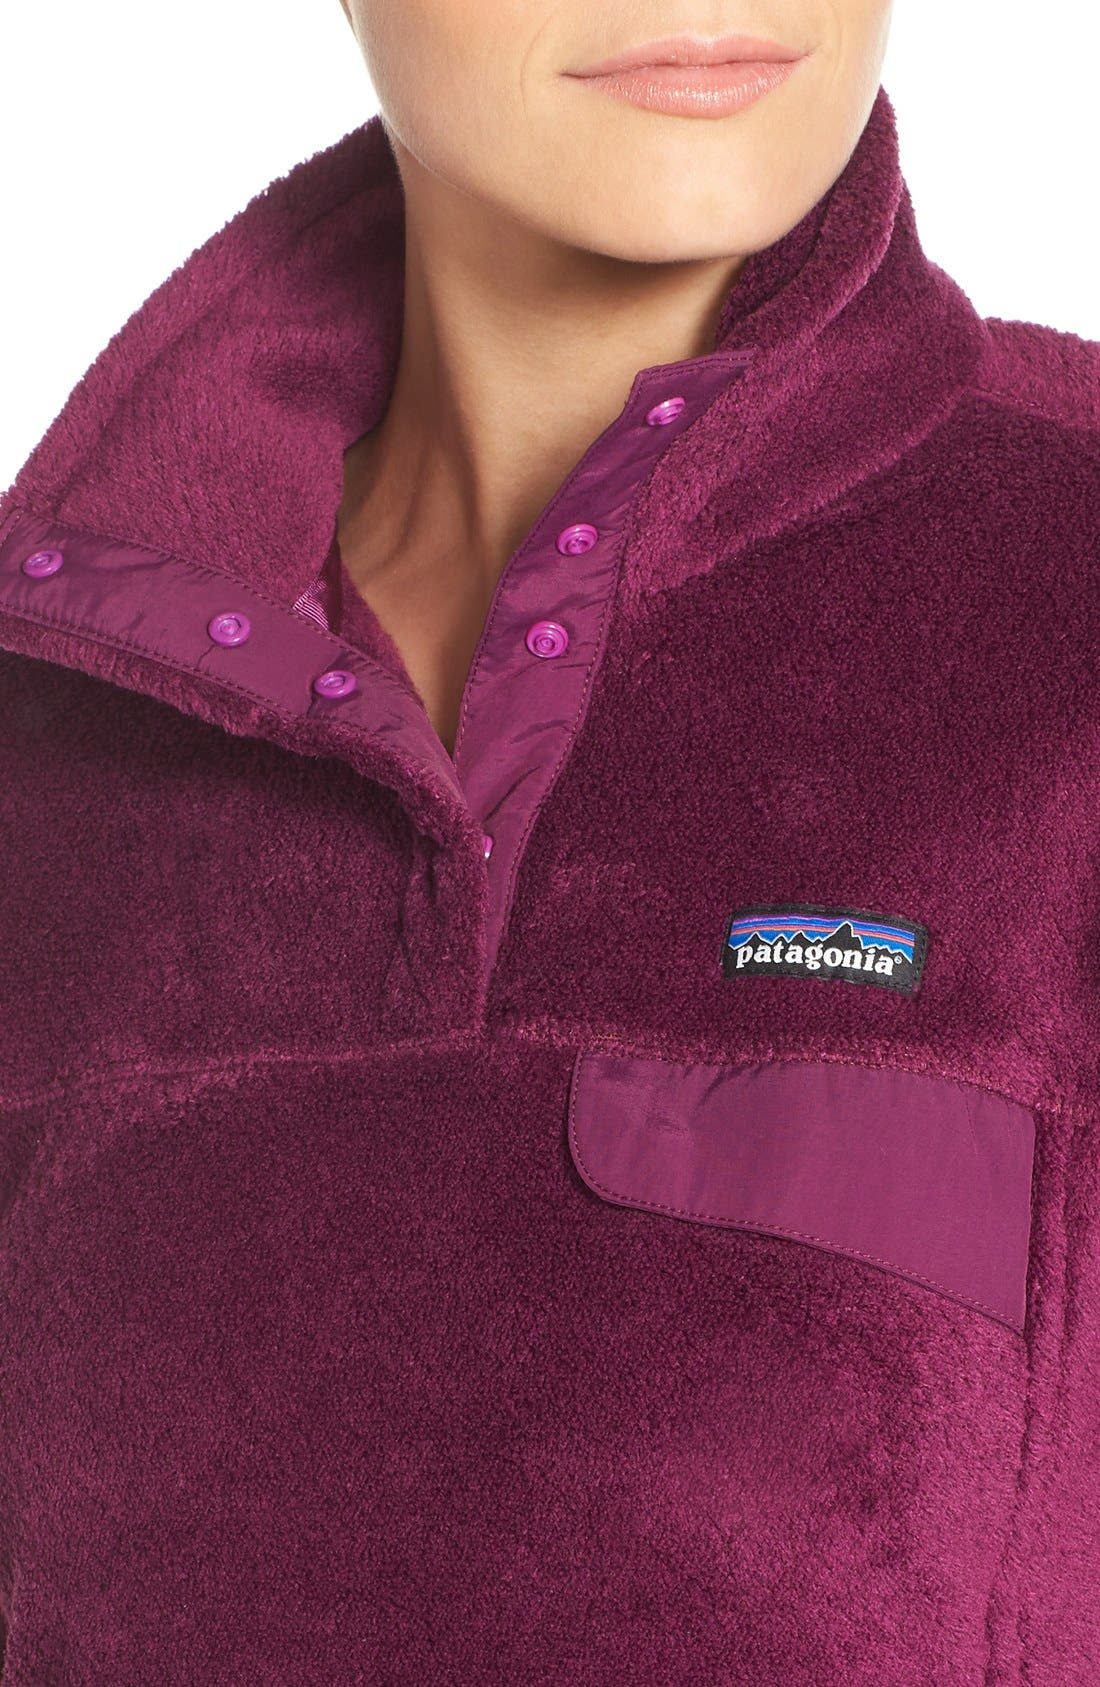 ,                             Re-Tool Snap-T<sup>®</sup> Fleece Pullover,                             Alternate thumbnail 169, color,                             504